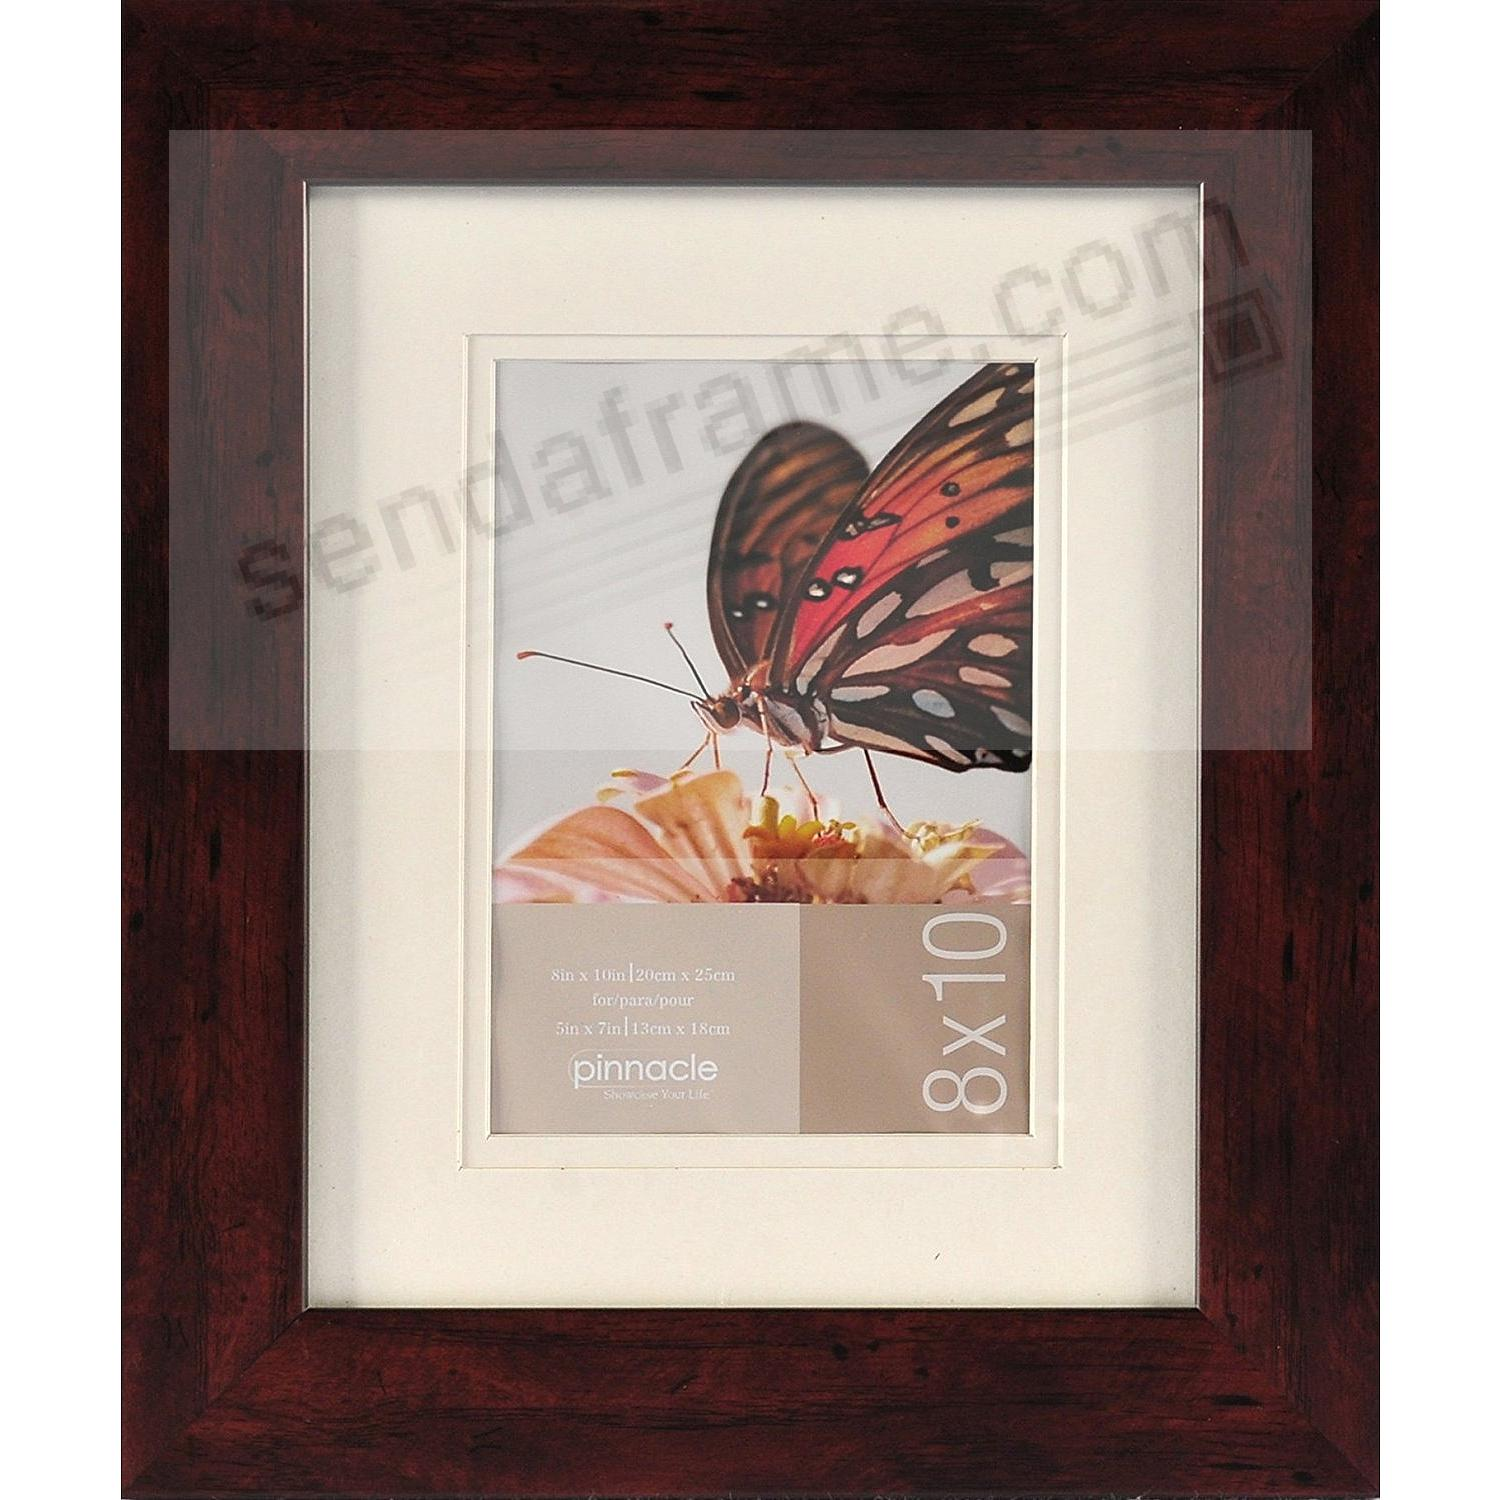 Walnut Wood Wall Frame matted 8x10/5x7 by Pinnacle™